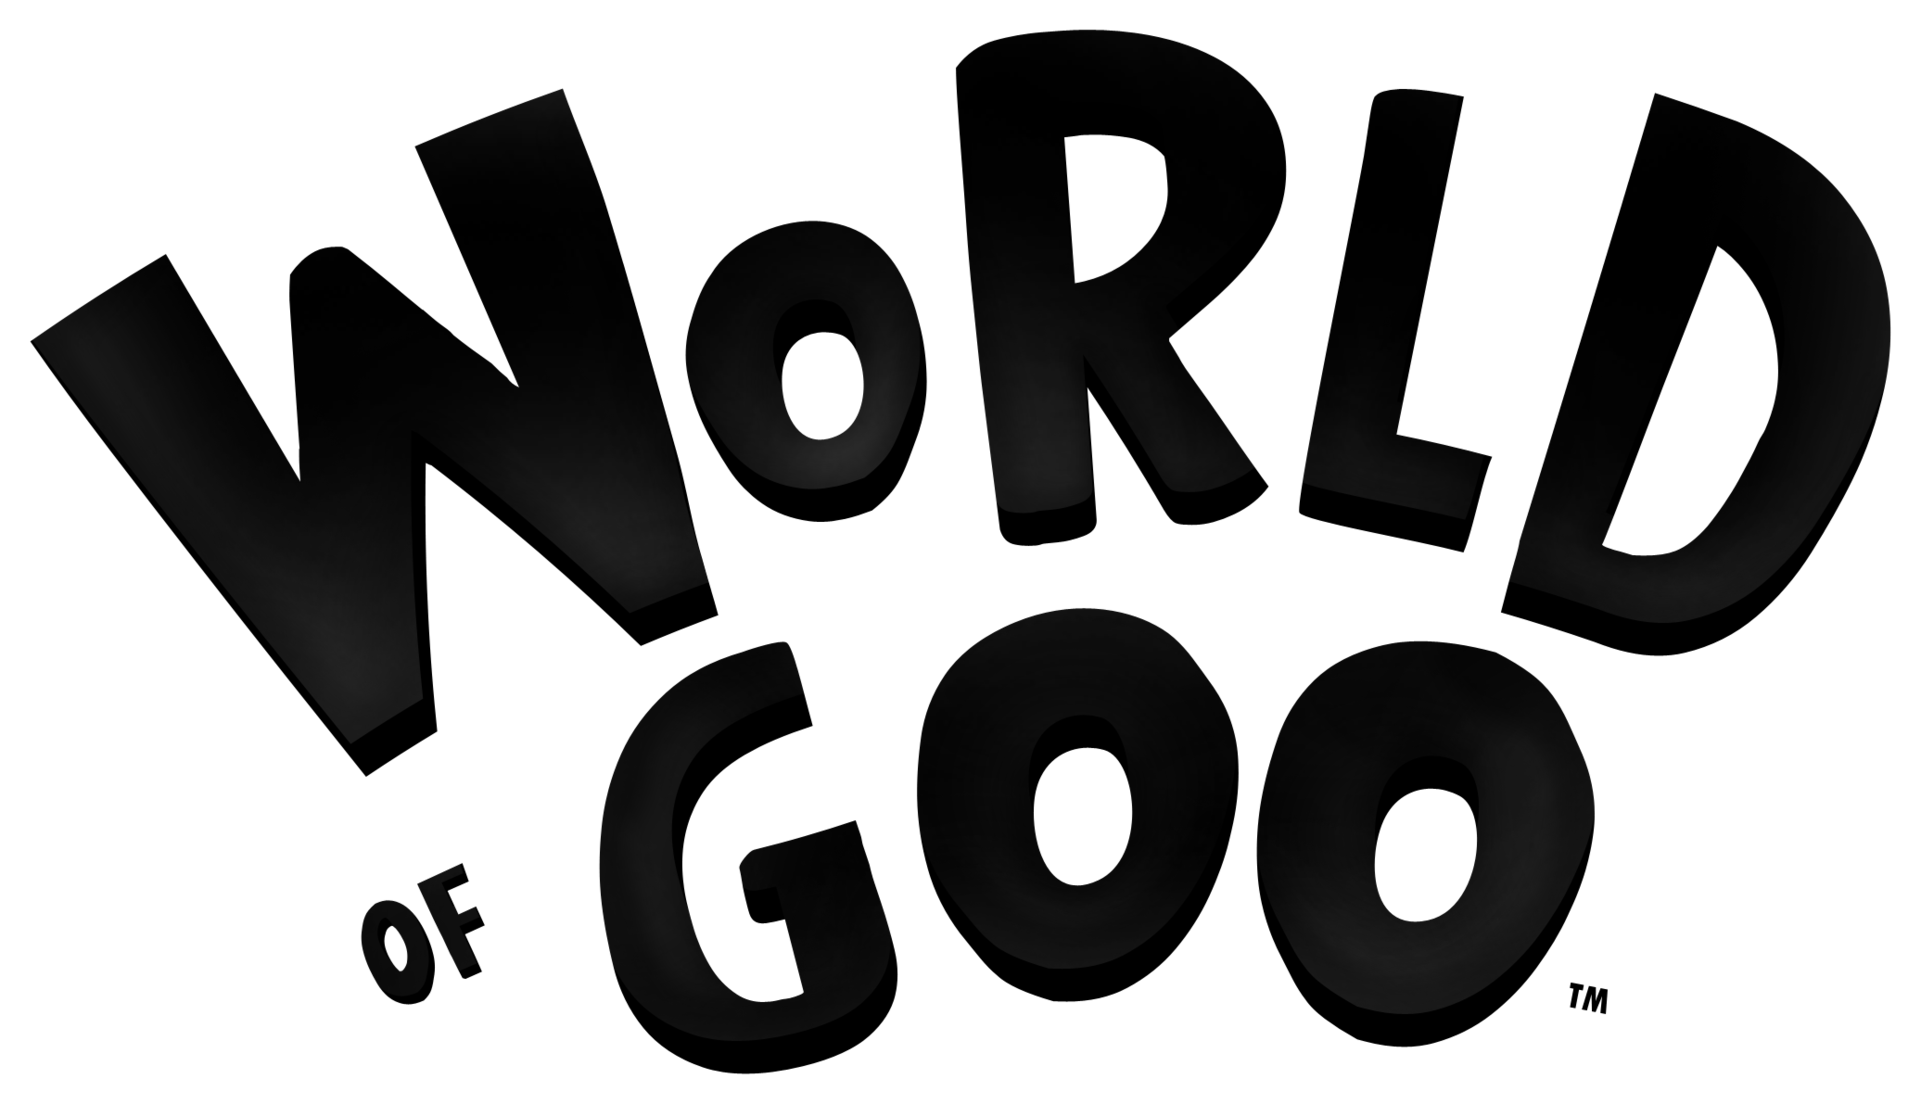 World of Goo – Wikipedia